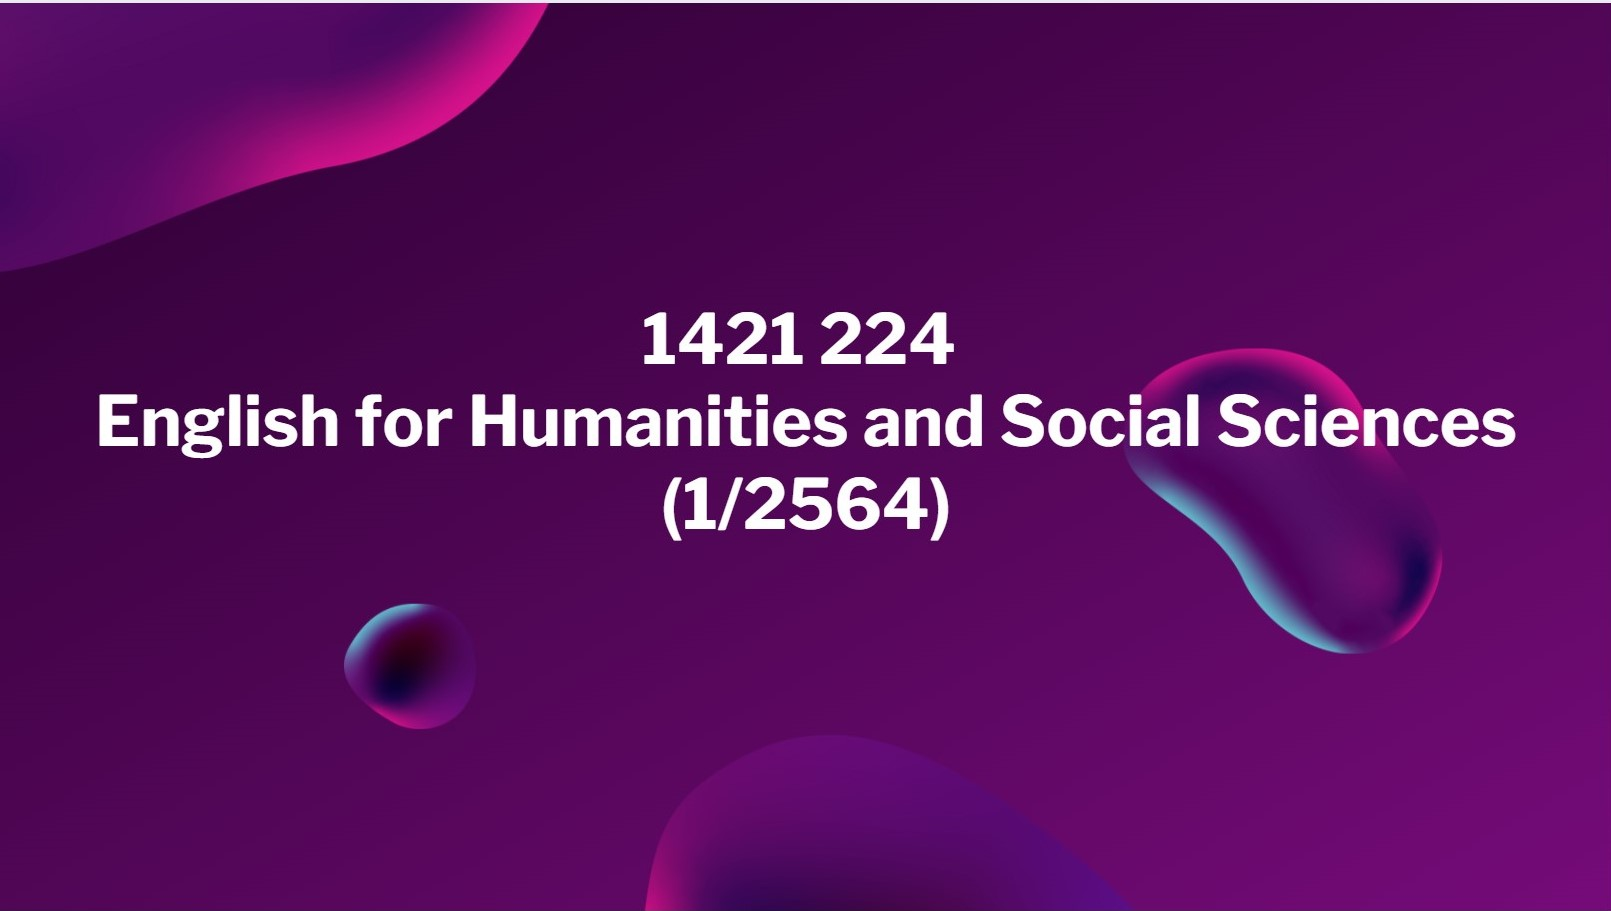 1421224English for Humanities and Social Sciences ภาค 1/2564